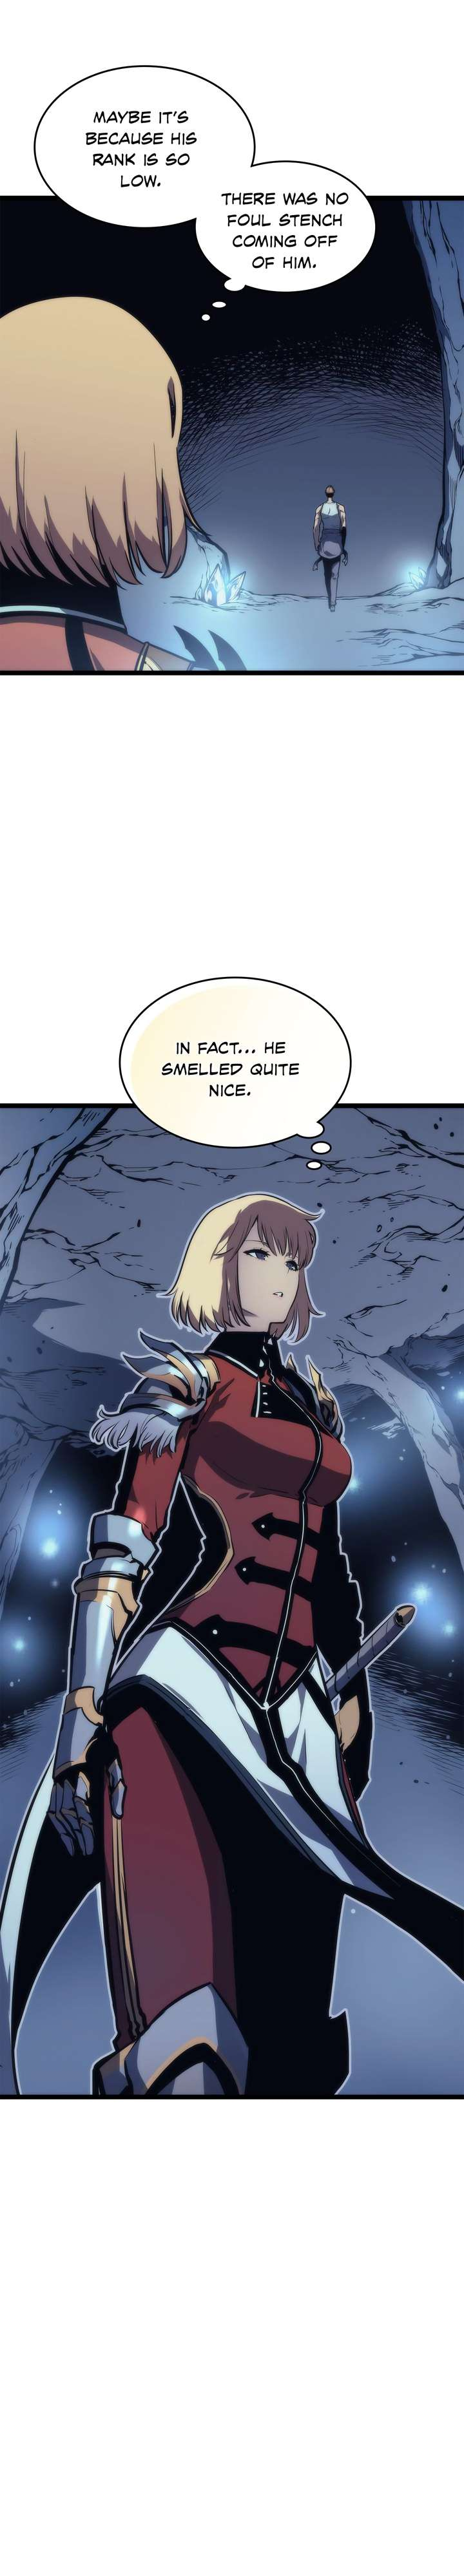 Solo Leveling Chapter 67 Page 9